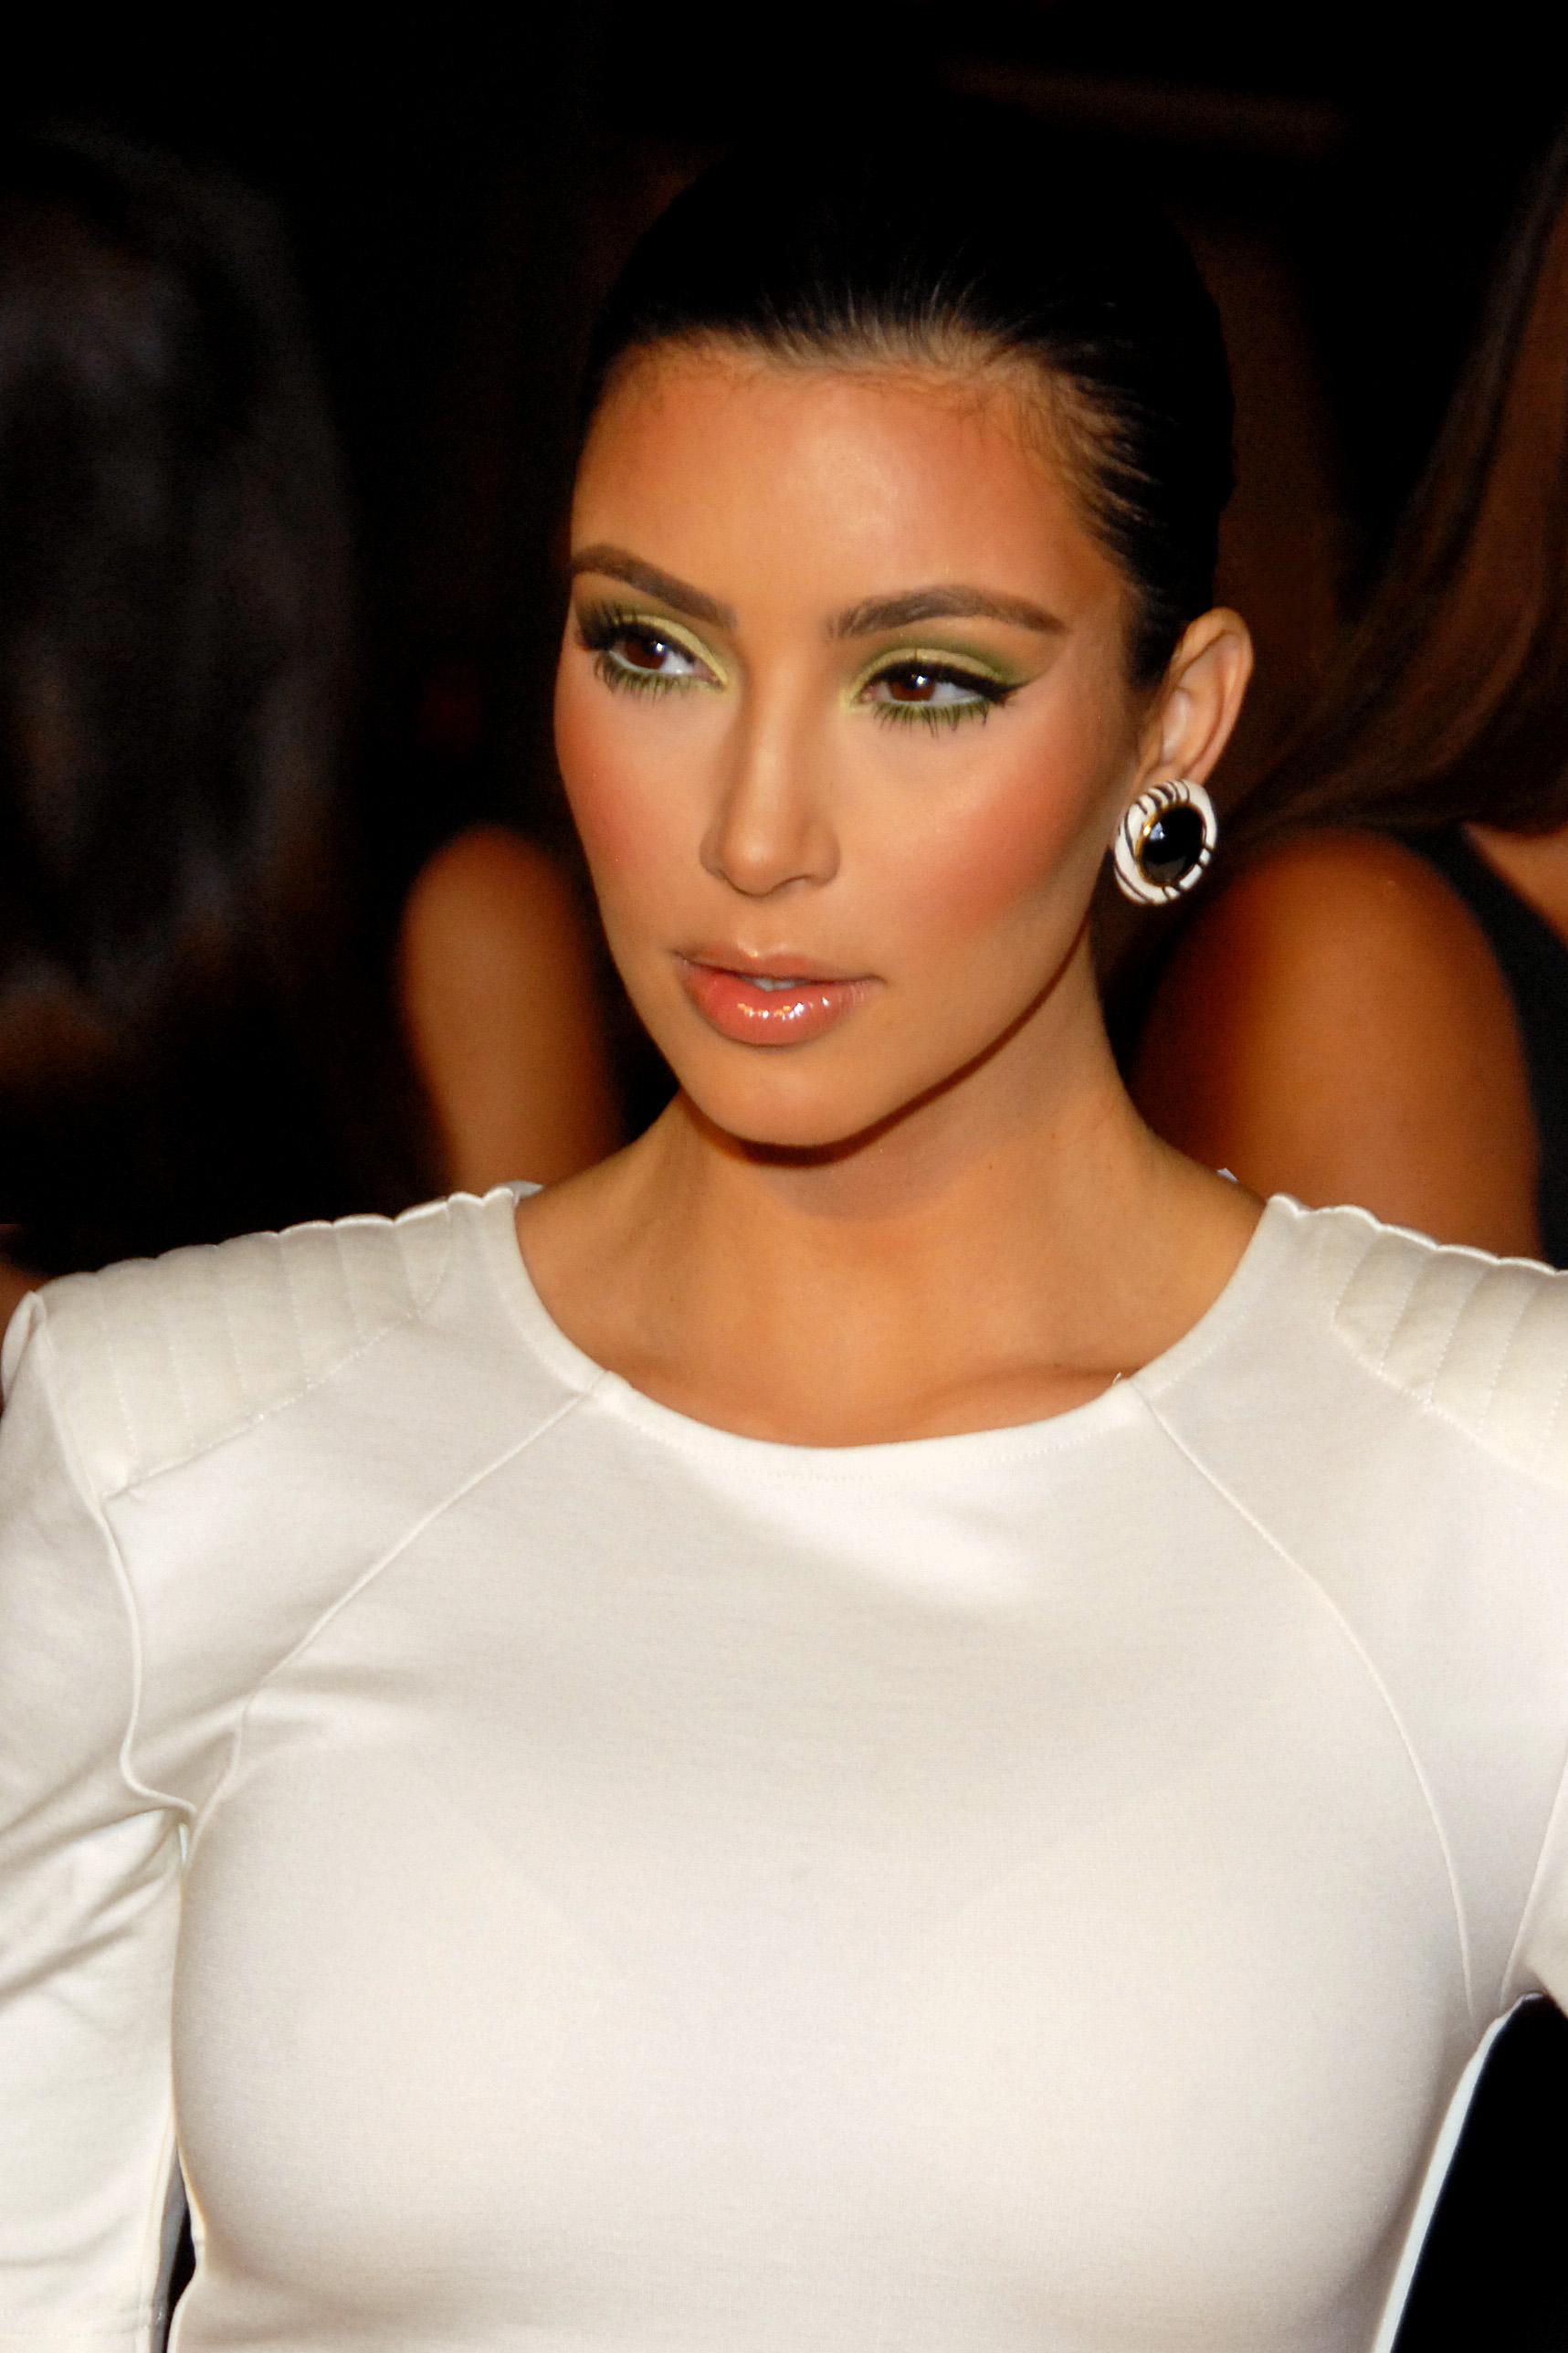 Kim Kardashian in Santa Monica, California on May 13, 2009 at Maxim's 10th Annual Hot 100 Celebration